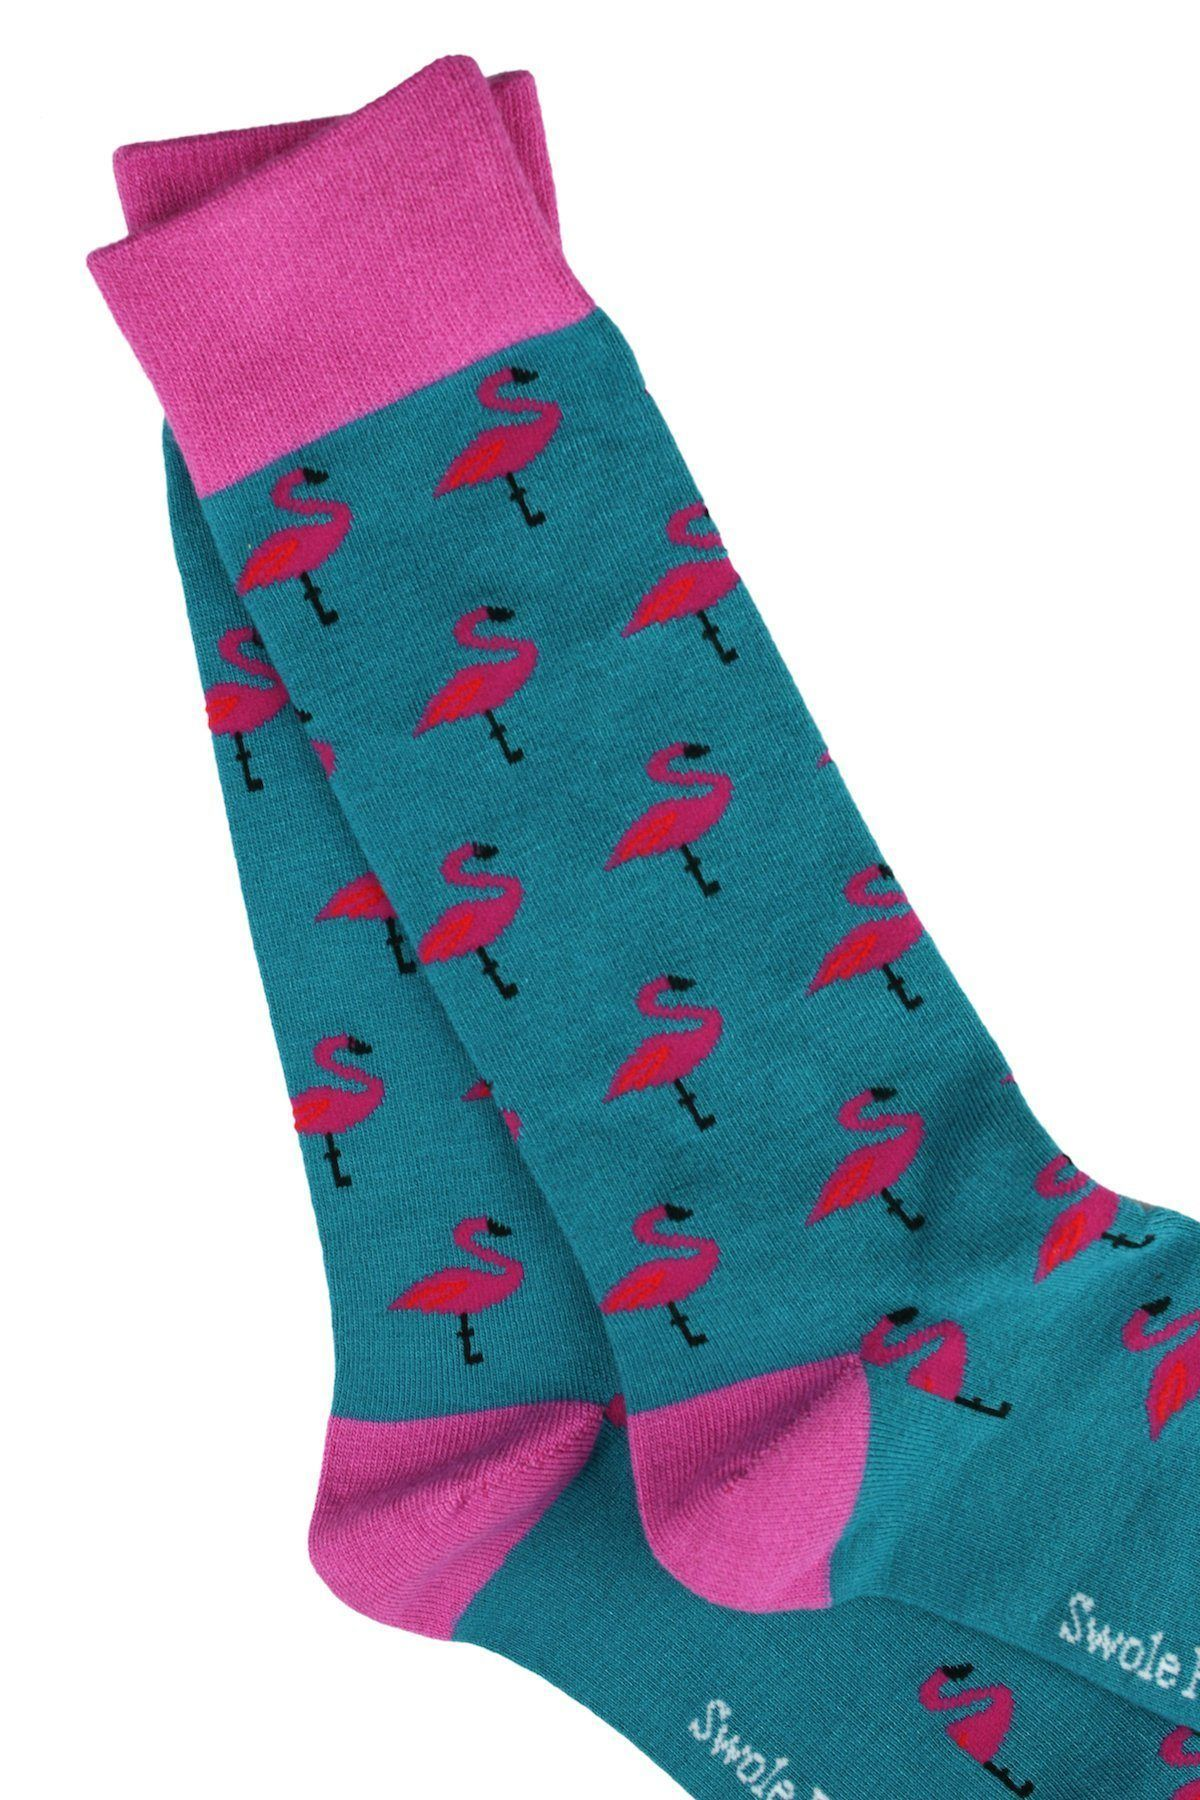 Flamingo Bamboo Socks